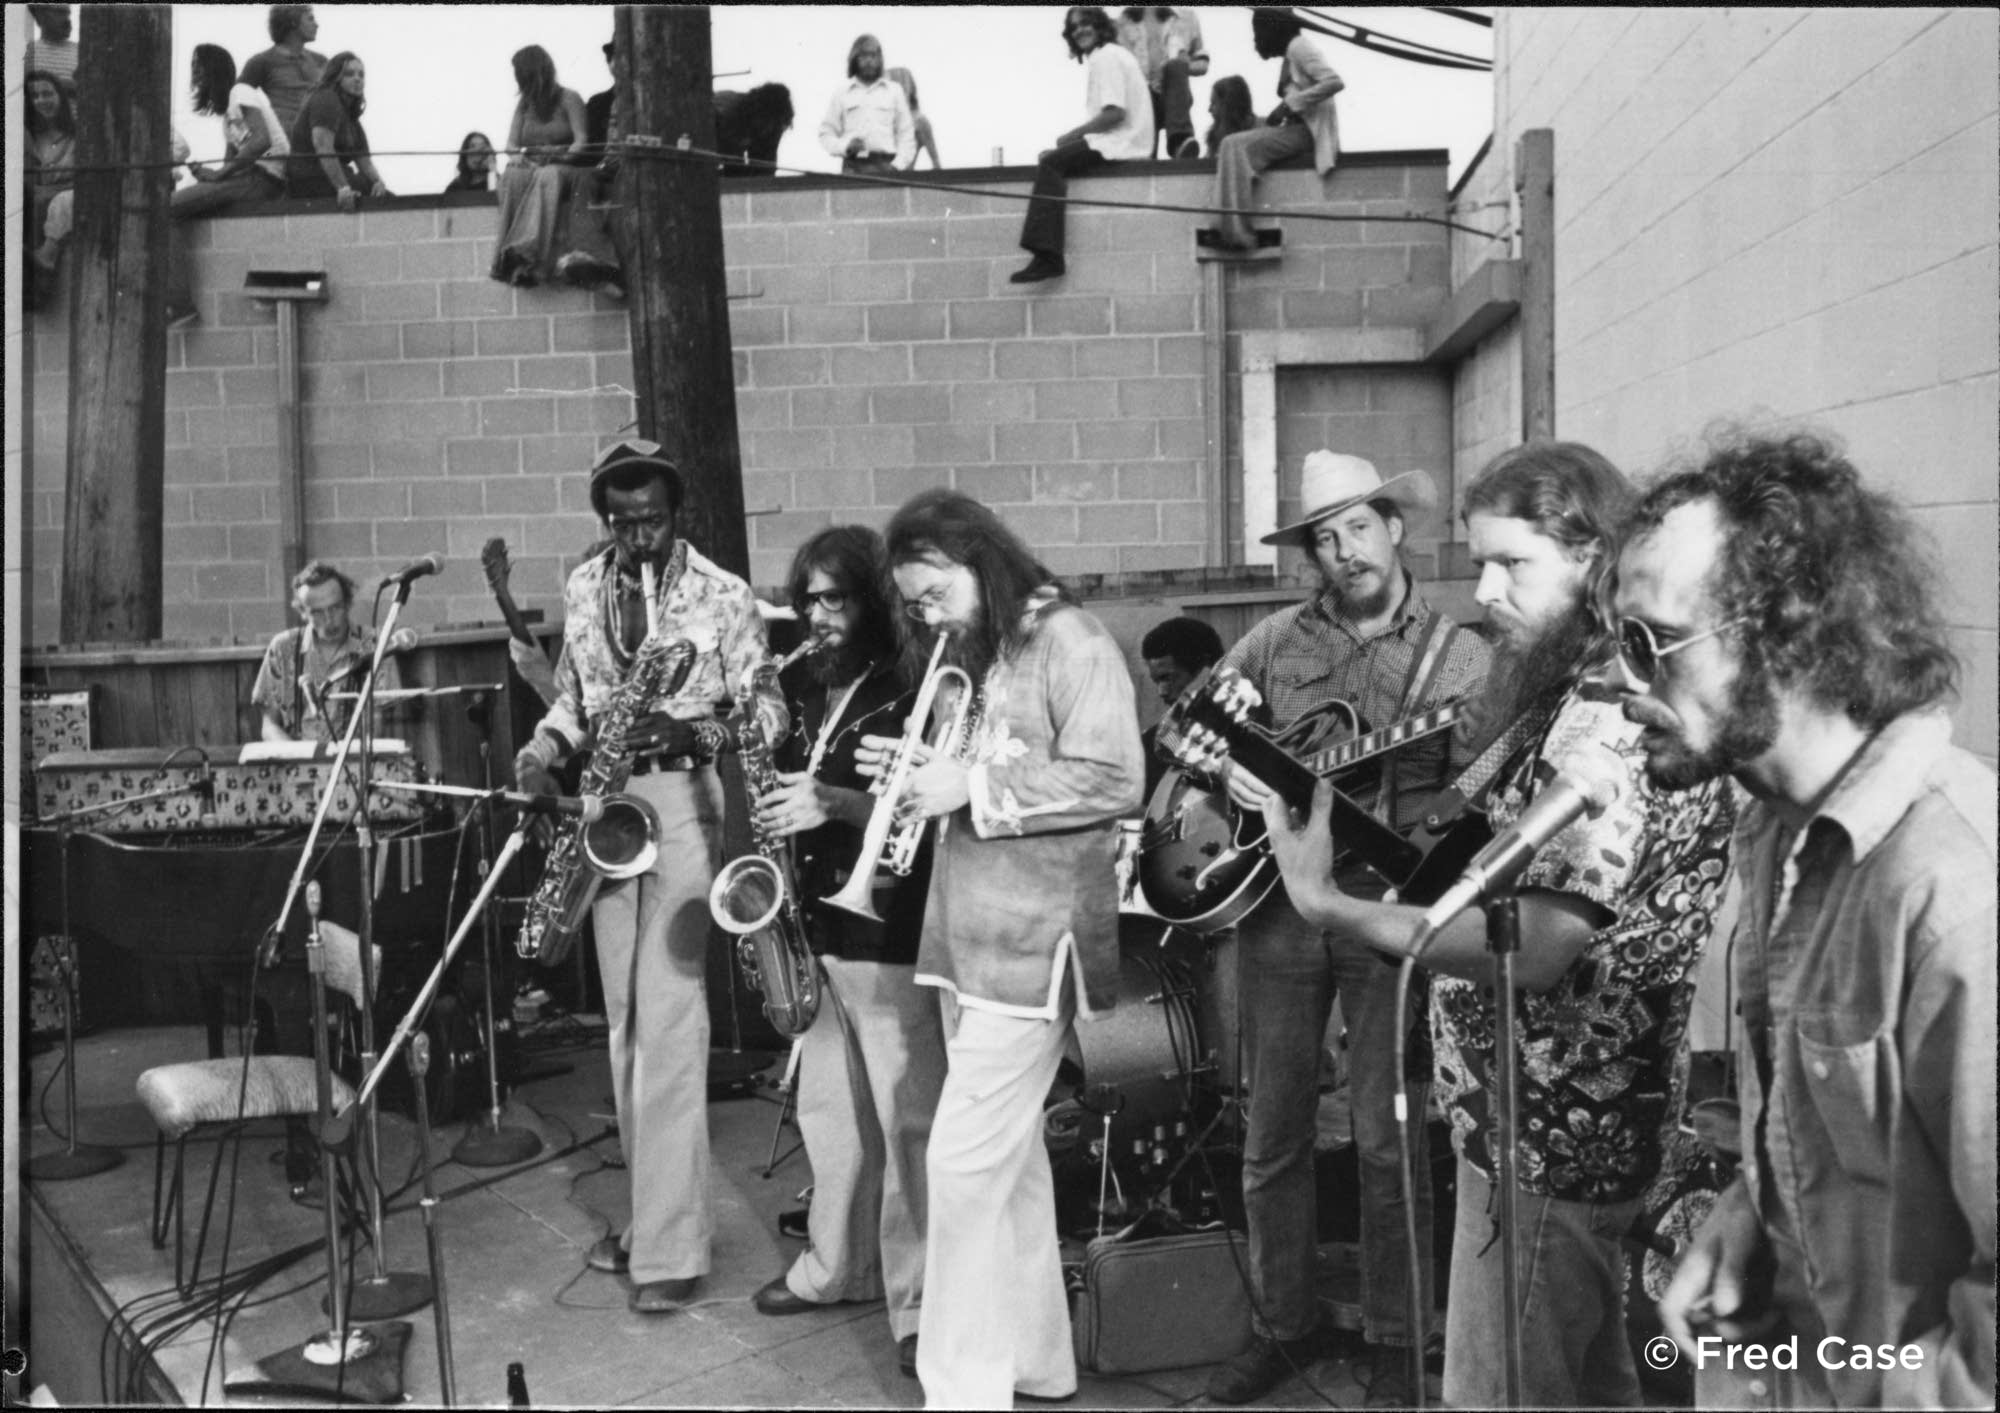 Willie and the Bees at the Cabooze in the 1970s.